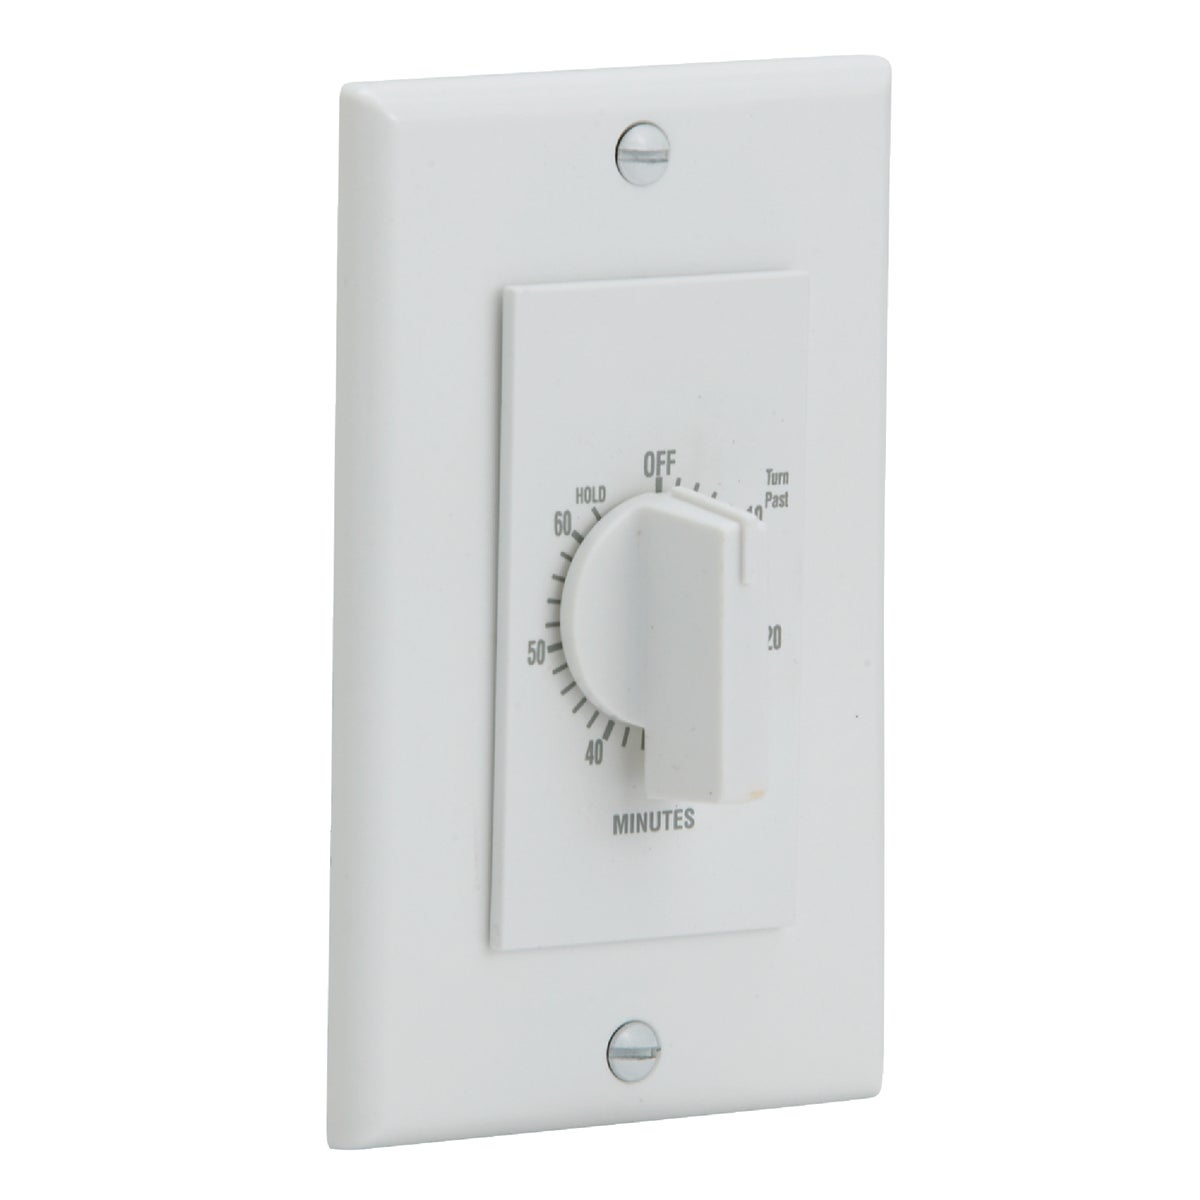 FAN CONTROL SWITCH - P59W by Broan Nutone